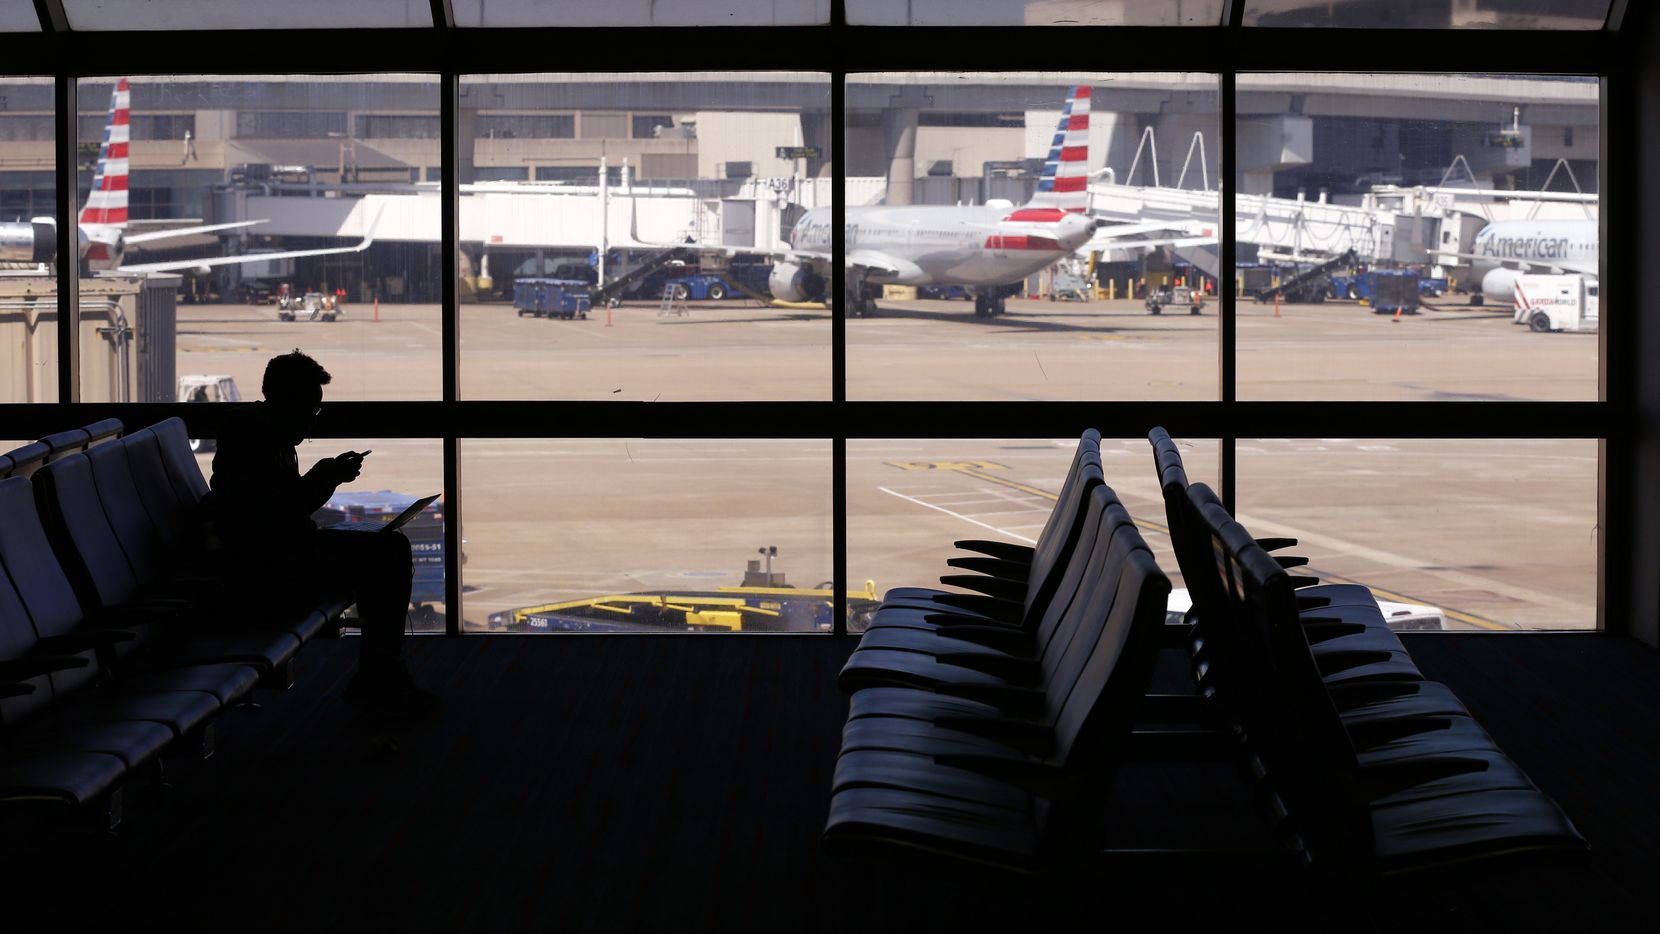 A single traveler sits next to empty chairs at an American Airlines gate in terminal C at DFW International Airport on Wednesday, April 8, 2020. The coronavirus pandemic has made an impact on the travel industry. (Vernon Bryant/The Dallas Morning News)